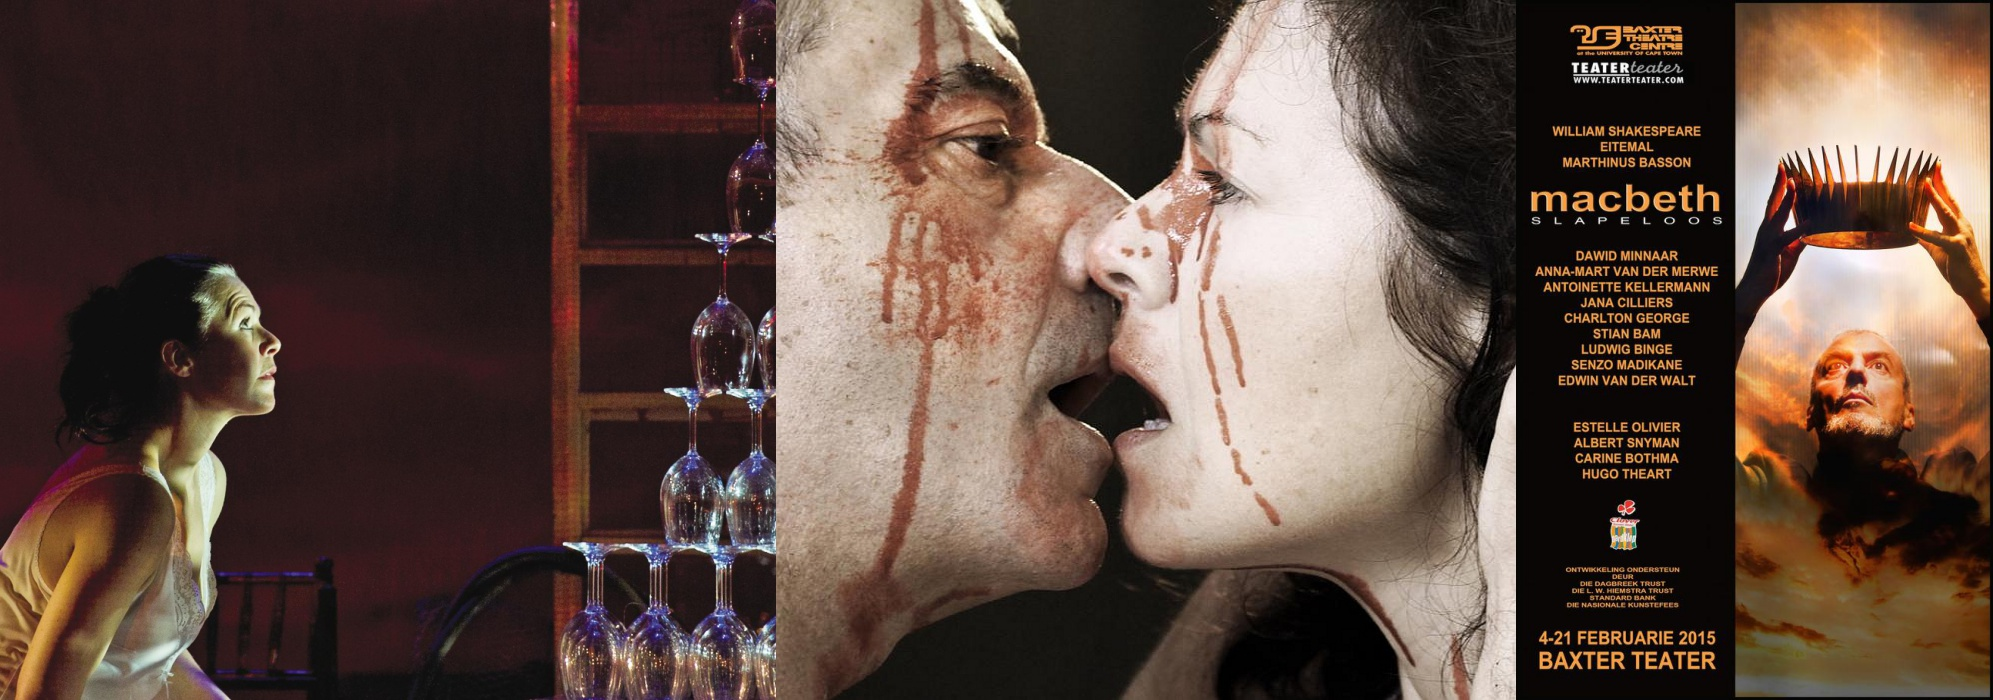 male and female relationship in macbeth